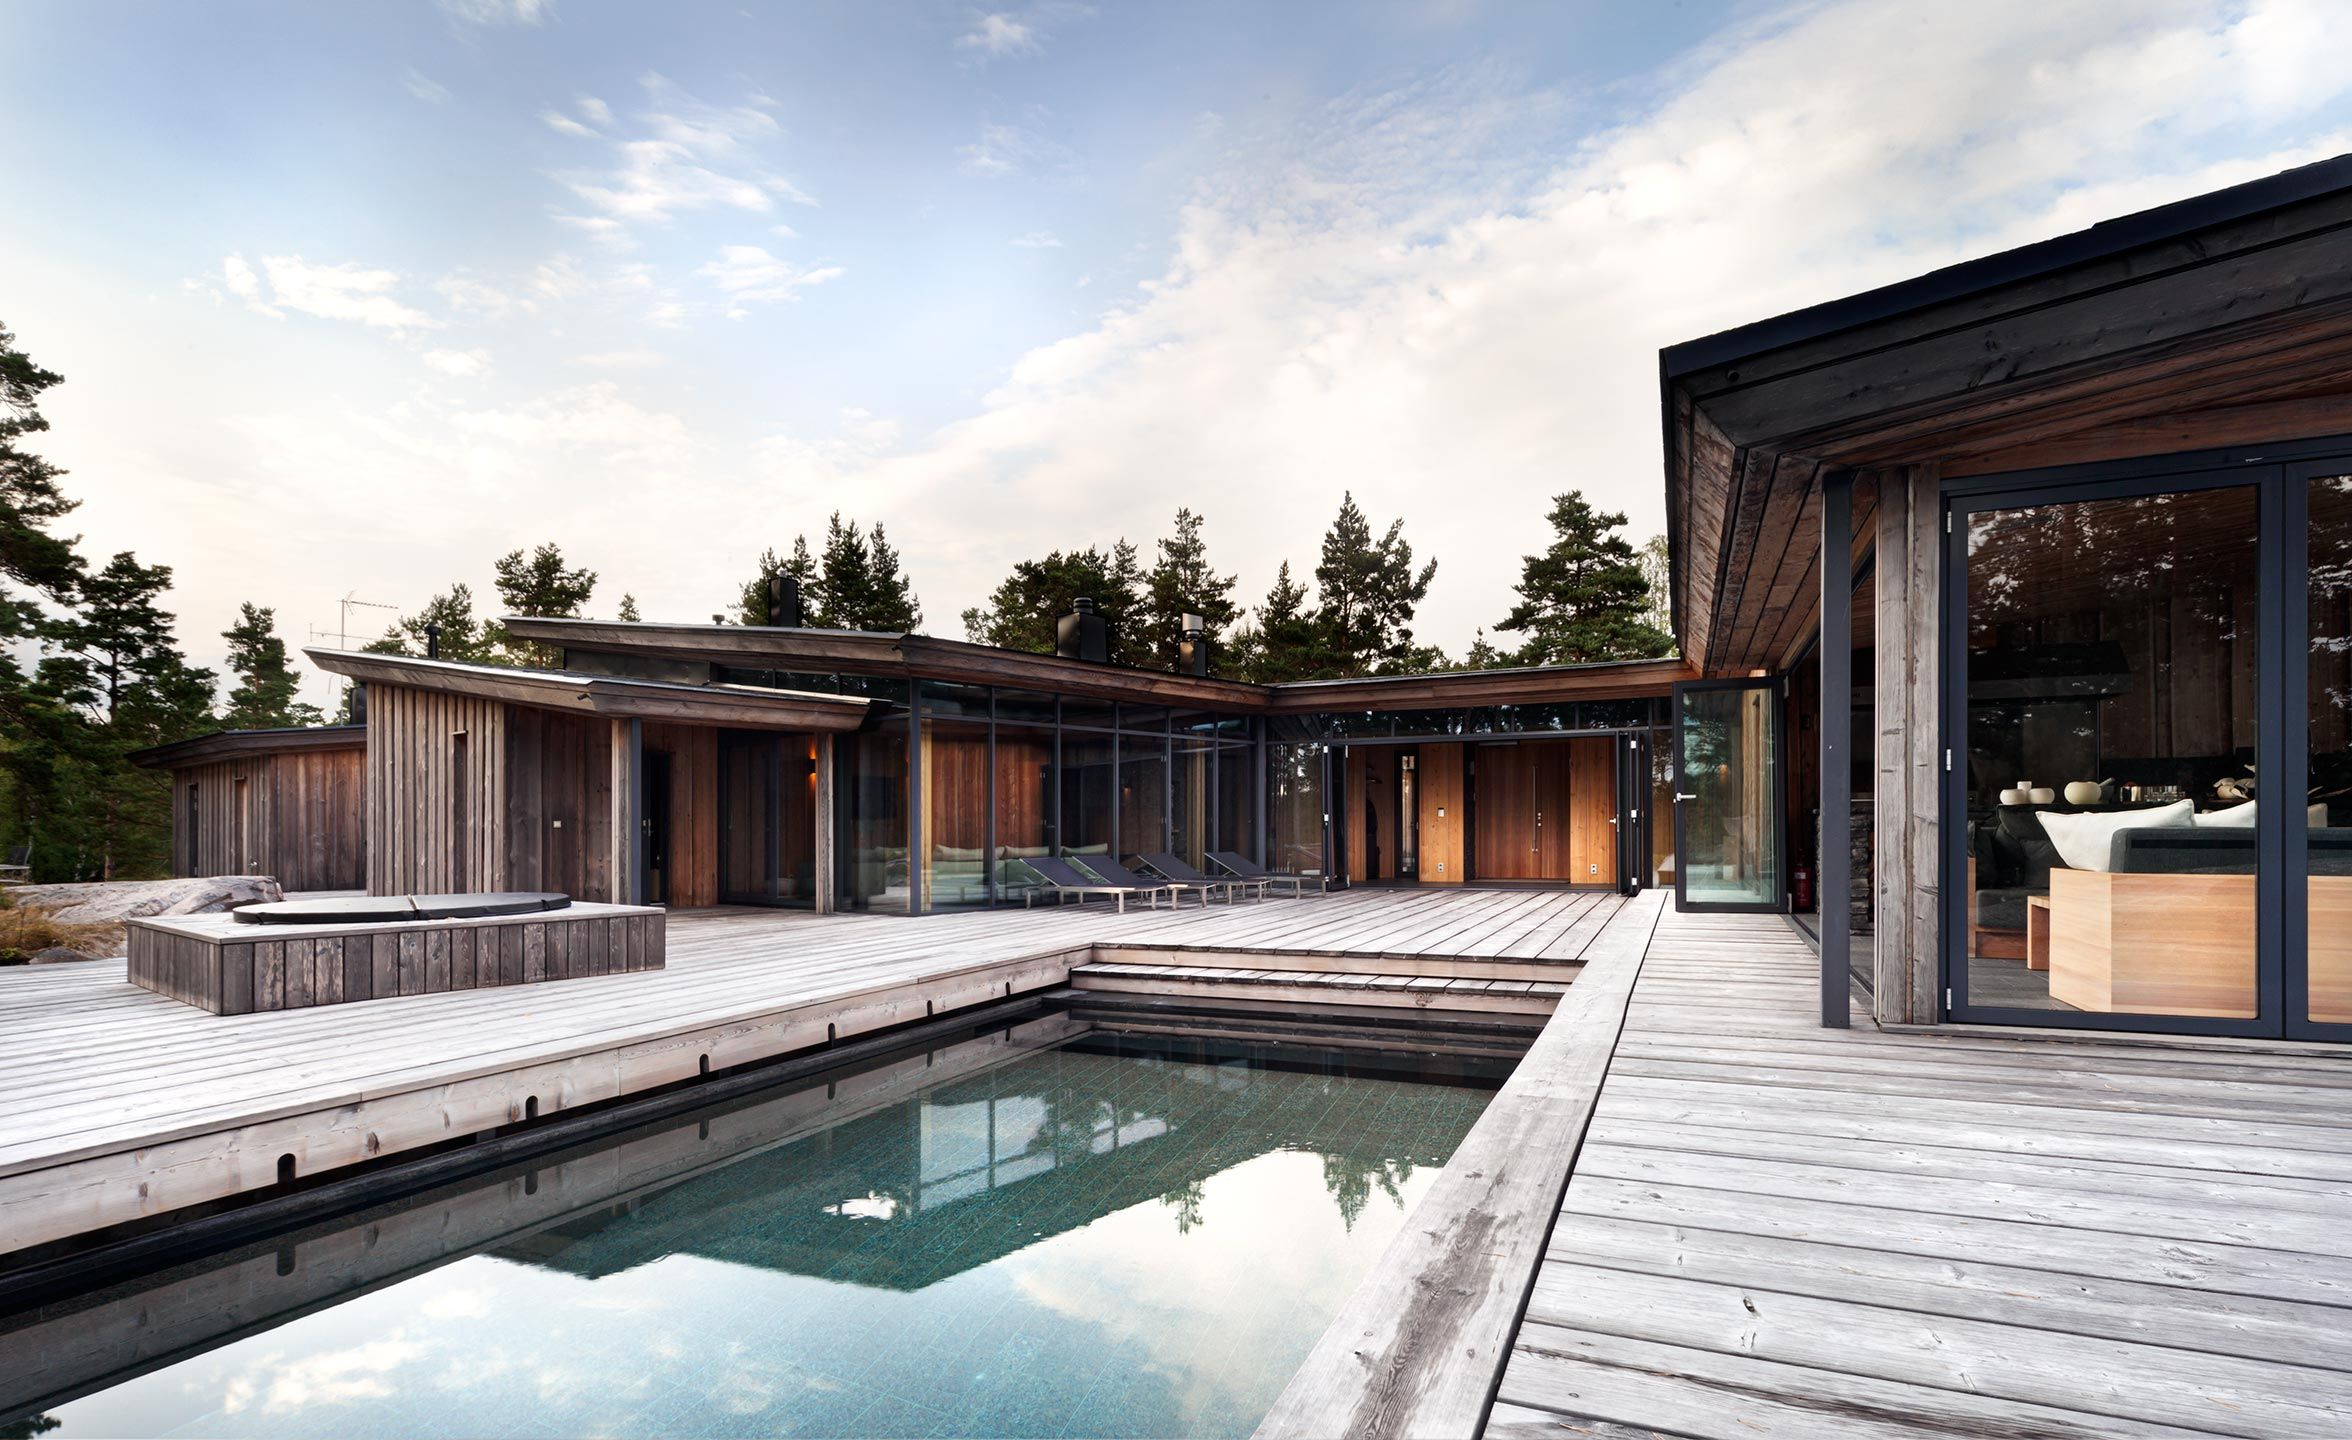 joarc i architects • holiday villas • finnish summerhouse, outdoor